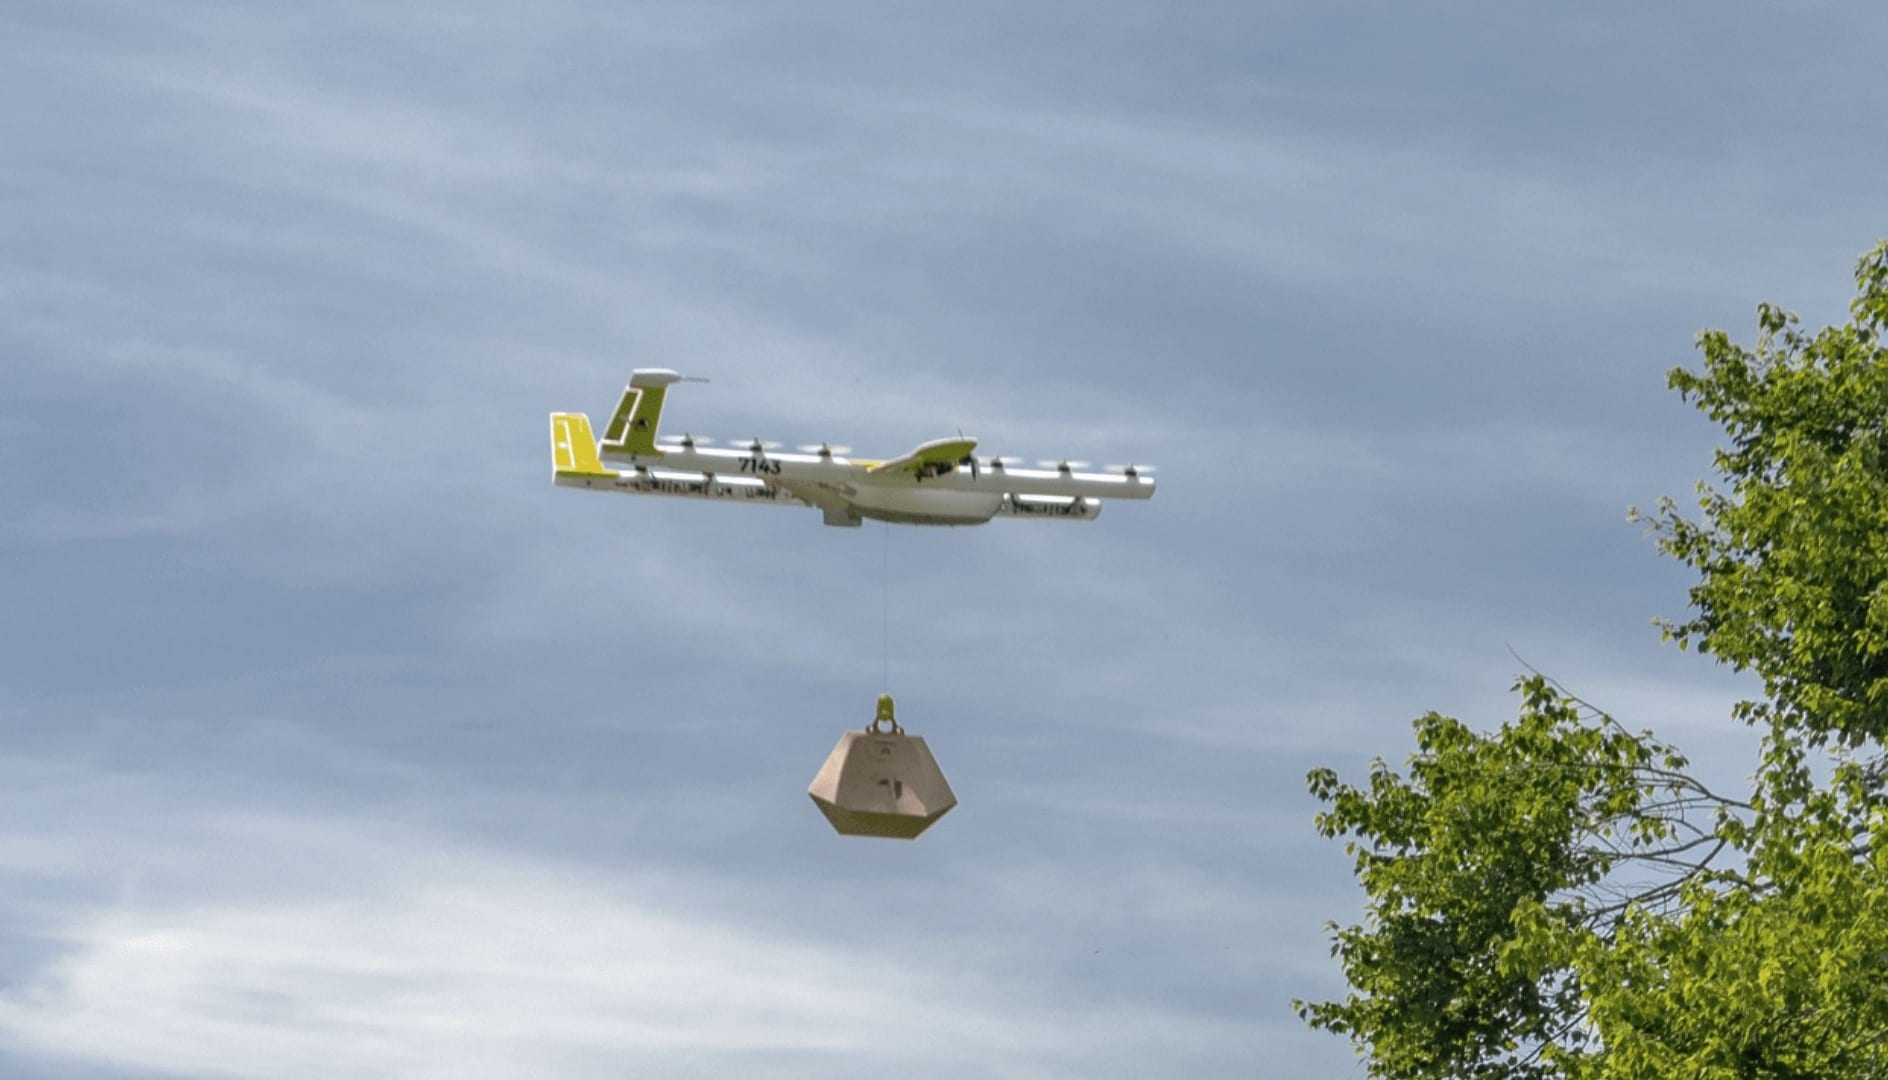 Wing drone delivery service has made thousands of deliveries during pandemic